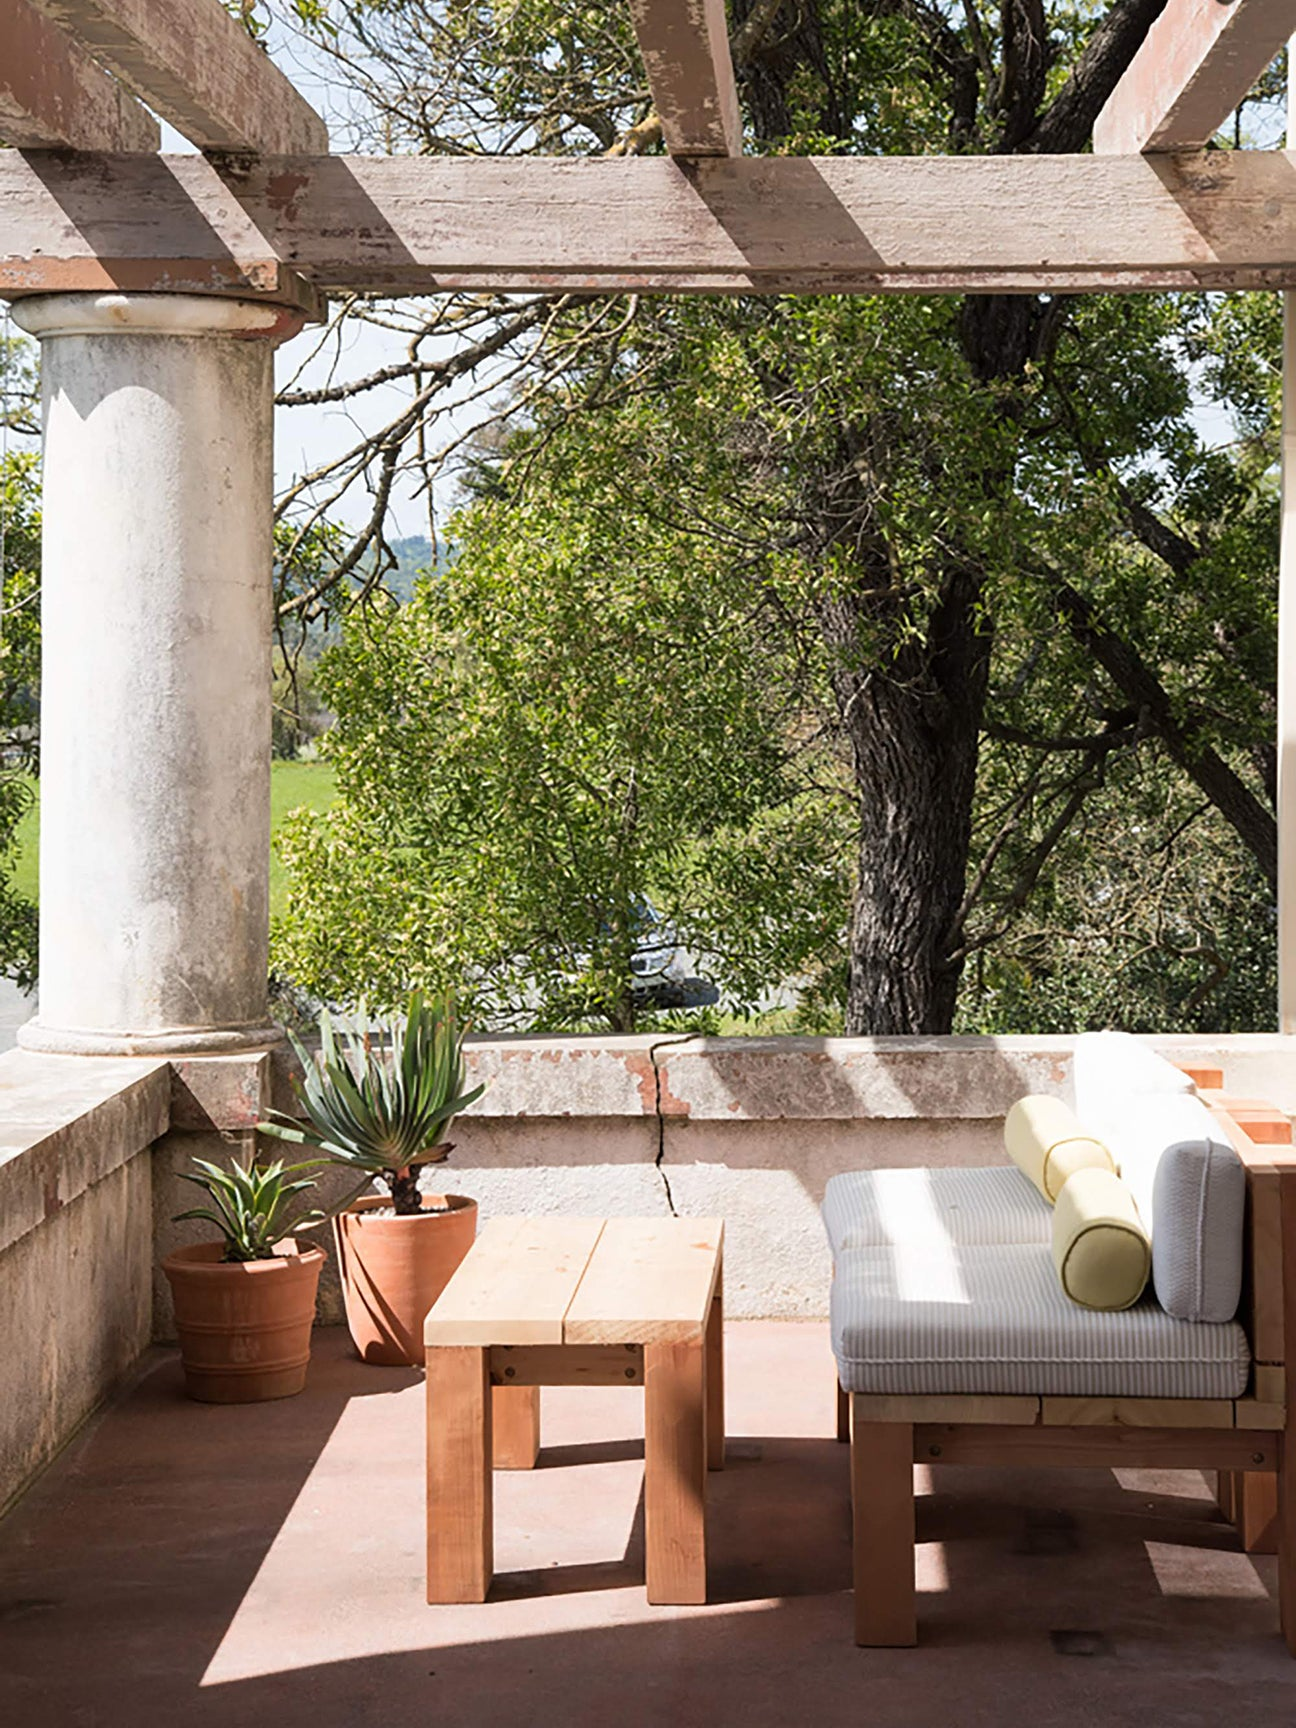 Apparently, This Is Homeowners' Most-Requested Outdoor Feature